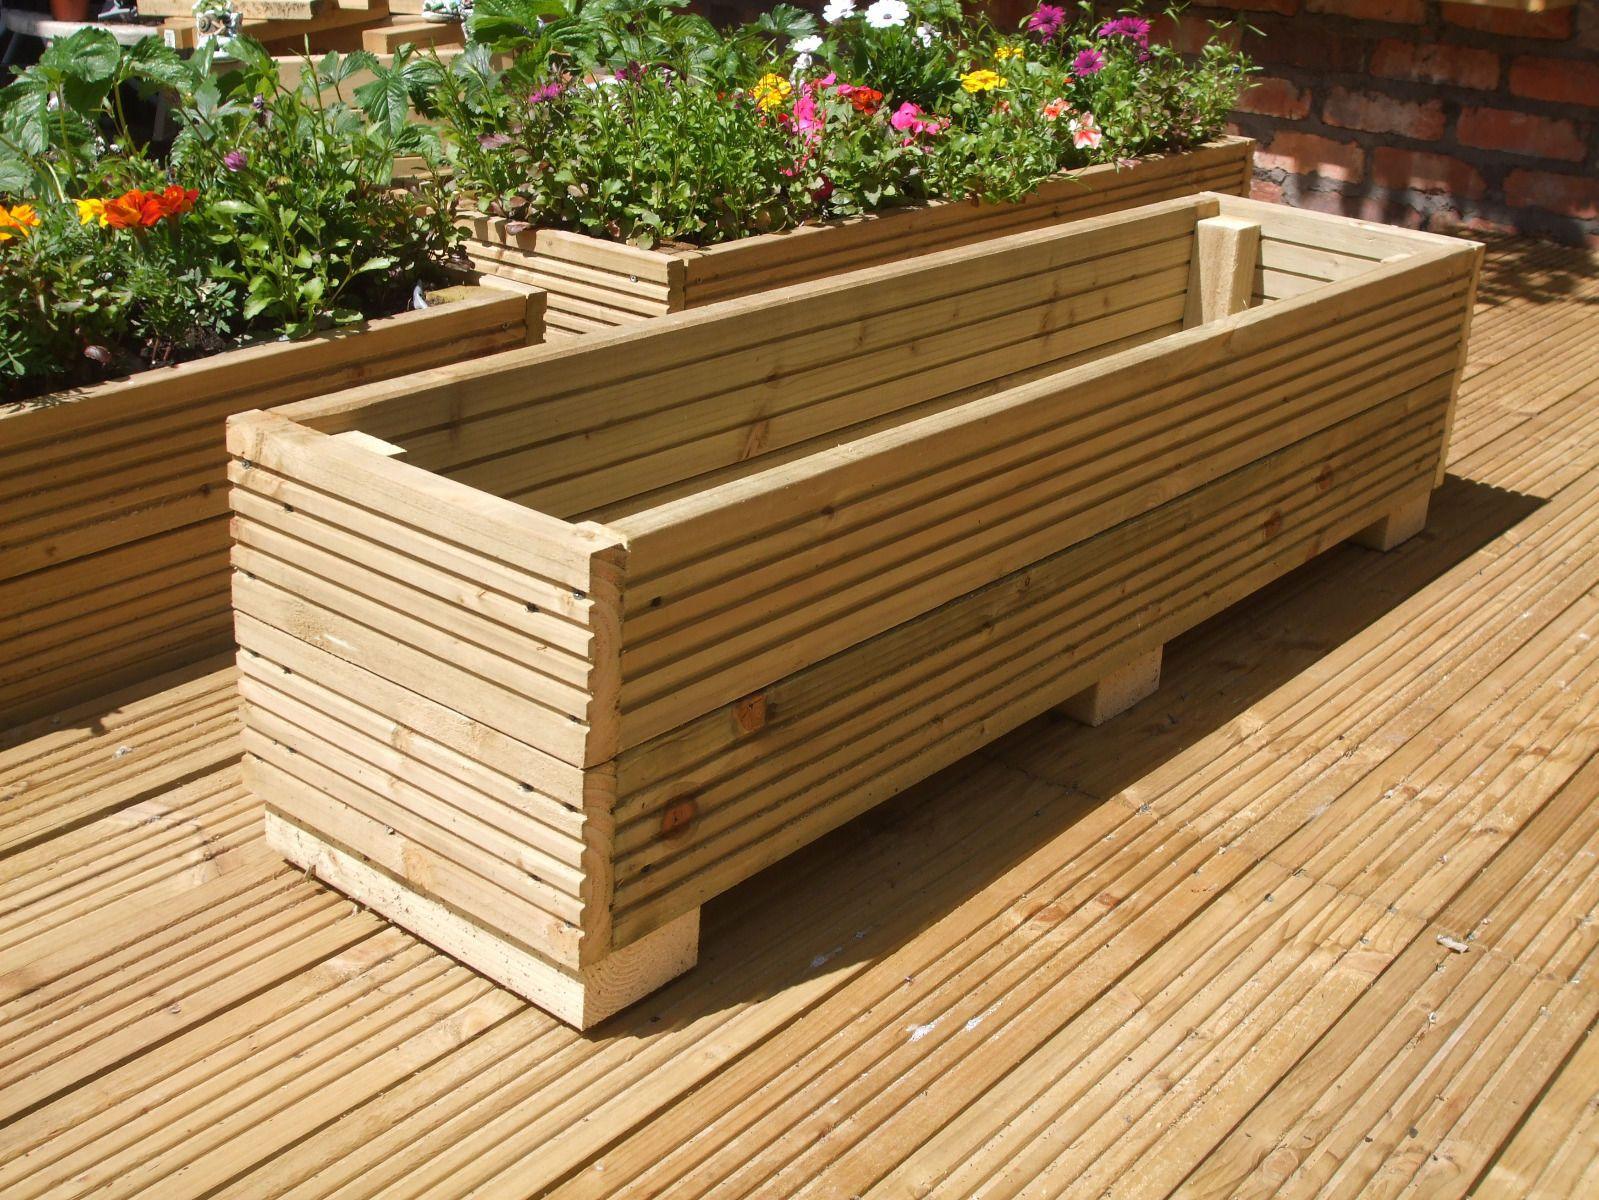 4ft Long Wooden Decking Planter Trough Window Box 122cm X 30cm 30cm